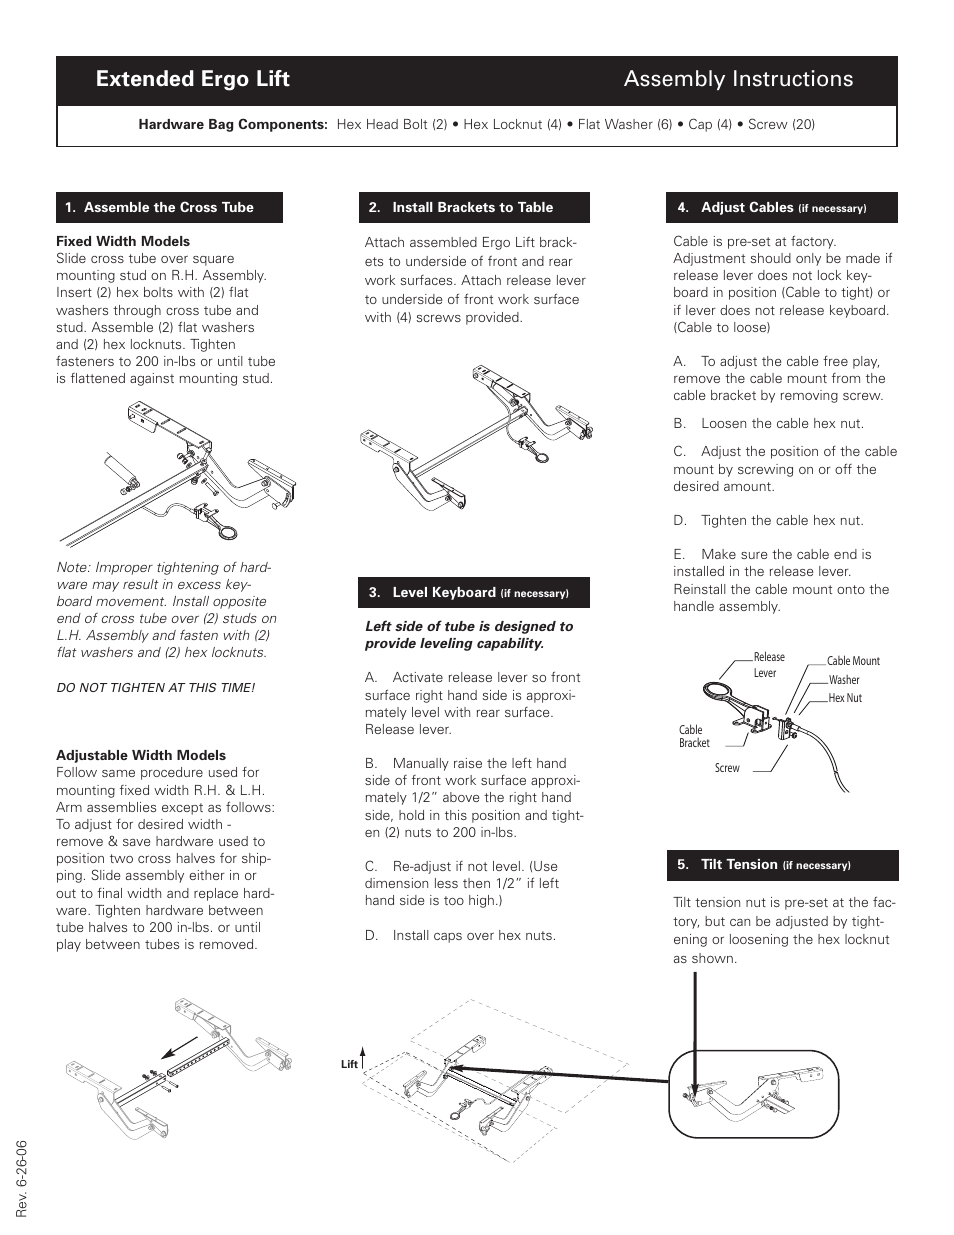 Humanscale Extended Ergo Lift User Manual 1 Page